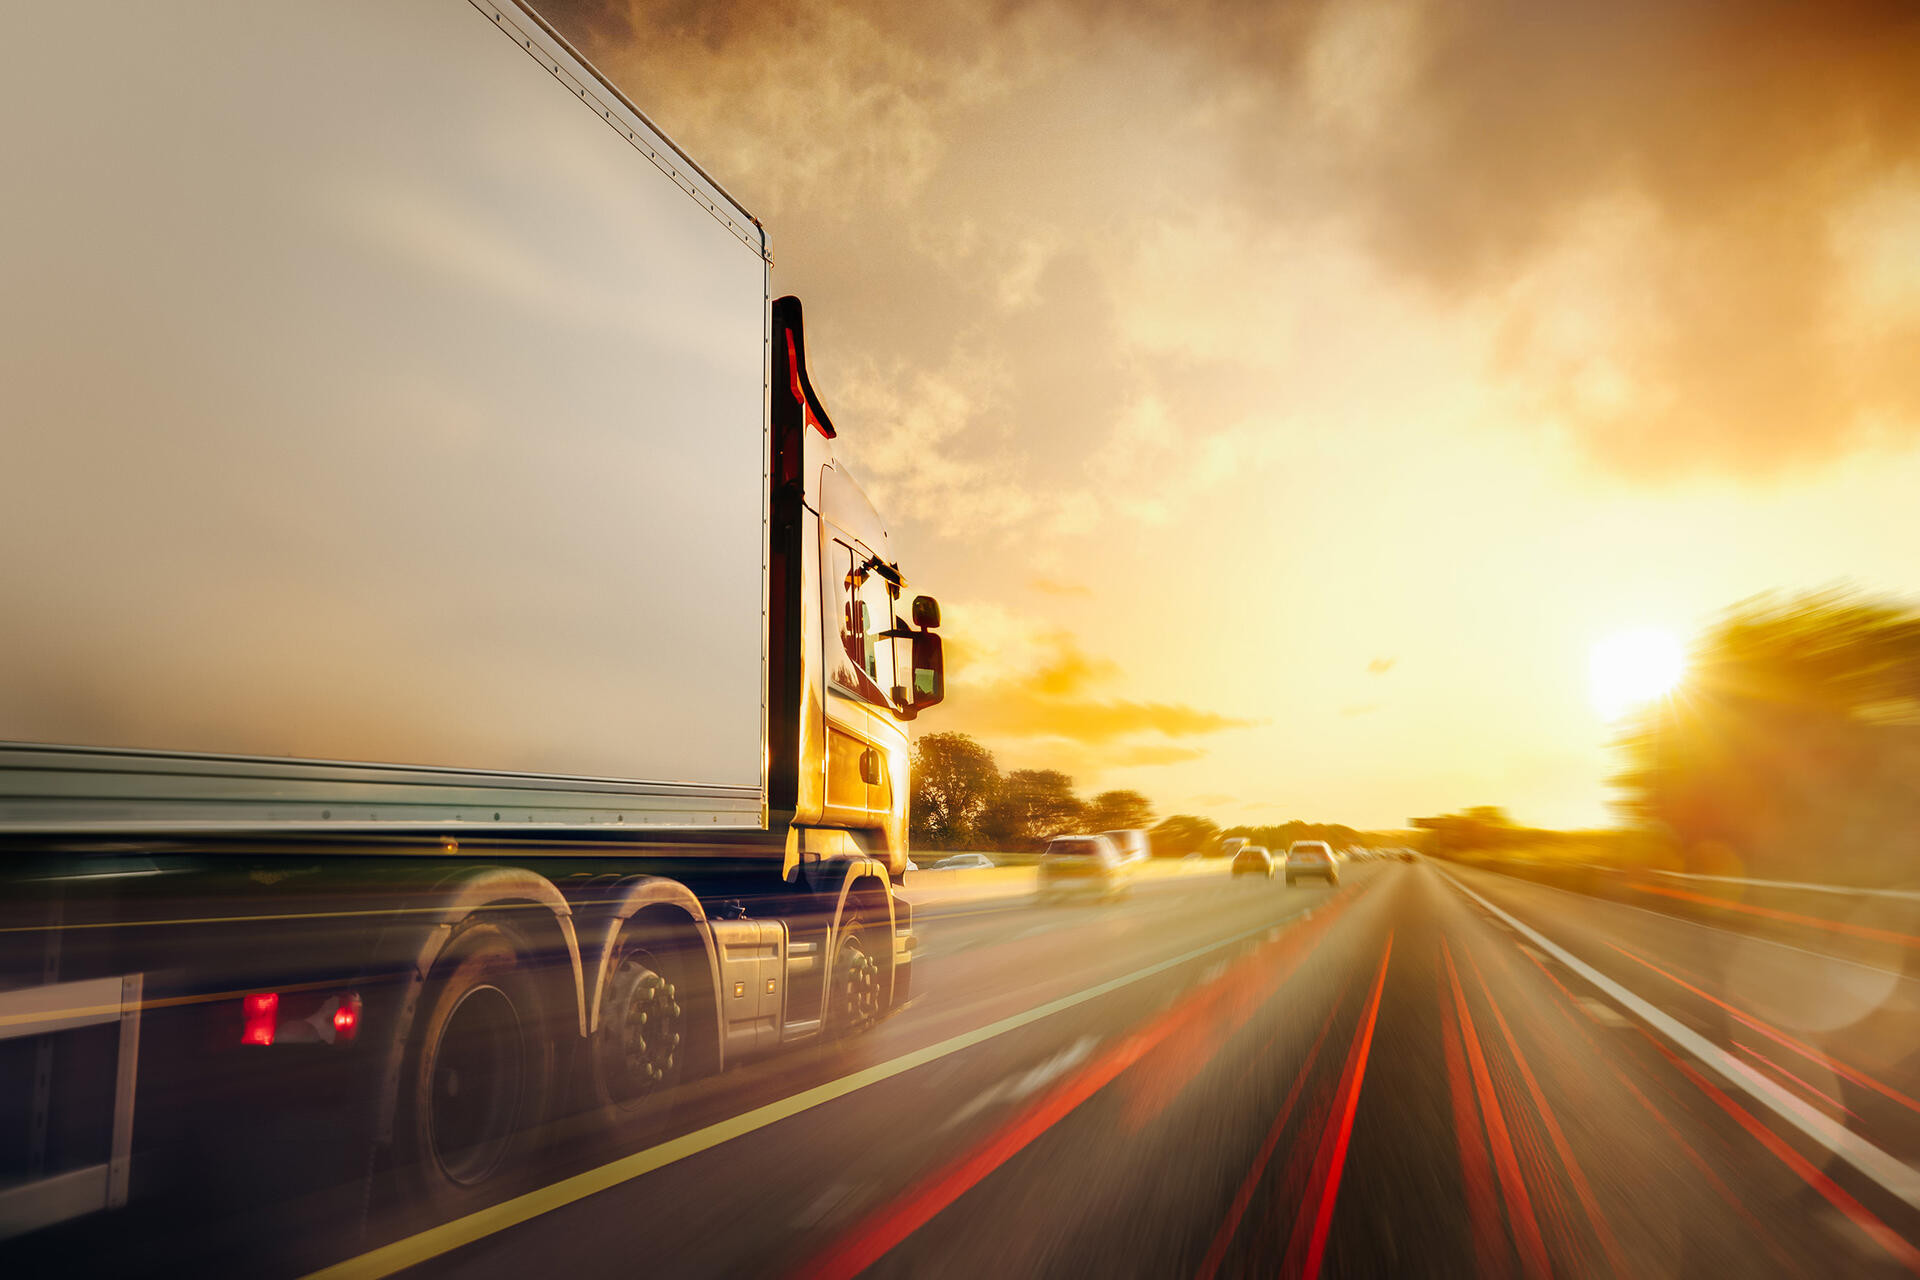 Lorry Cargo Transport Delivery in motion, United Kingdom M1 Motorway